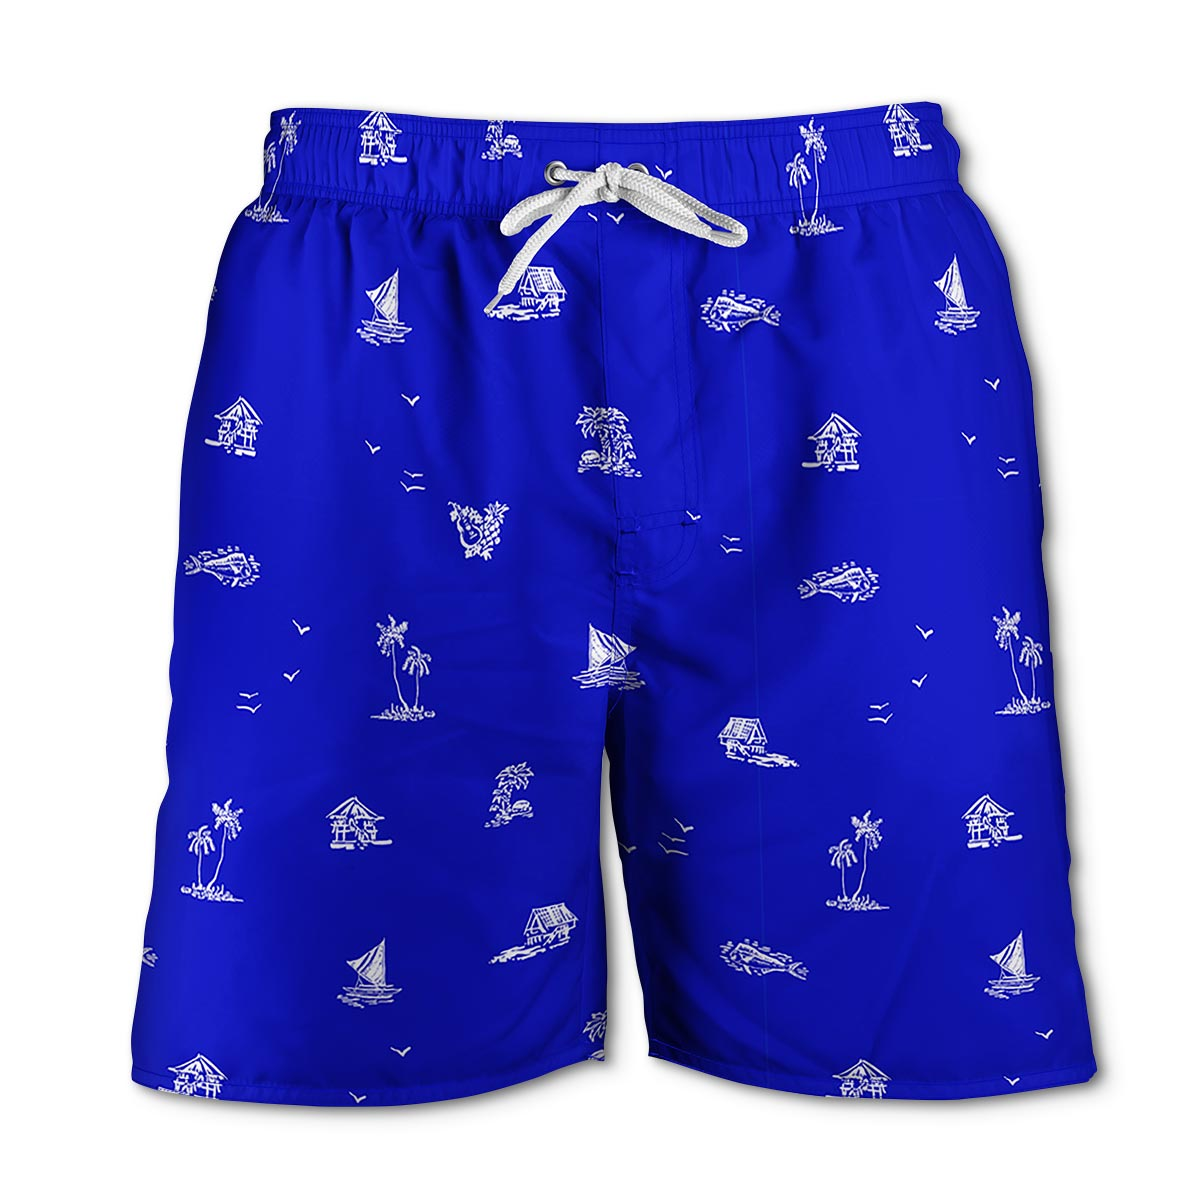 Newport Blue - Swim Shorts | South Beach - Royal